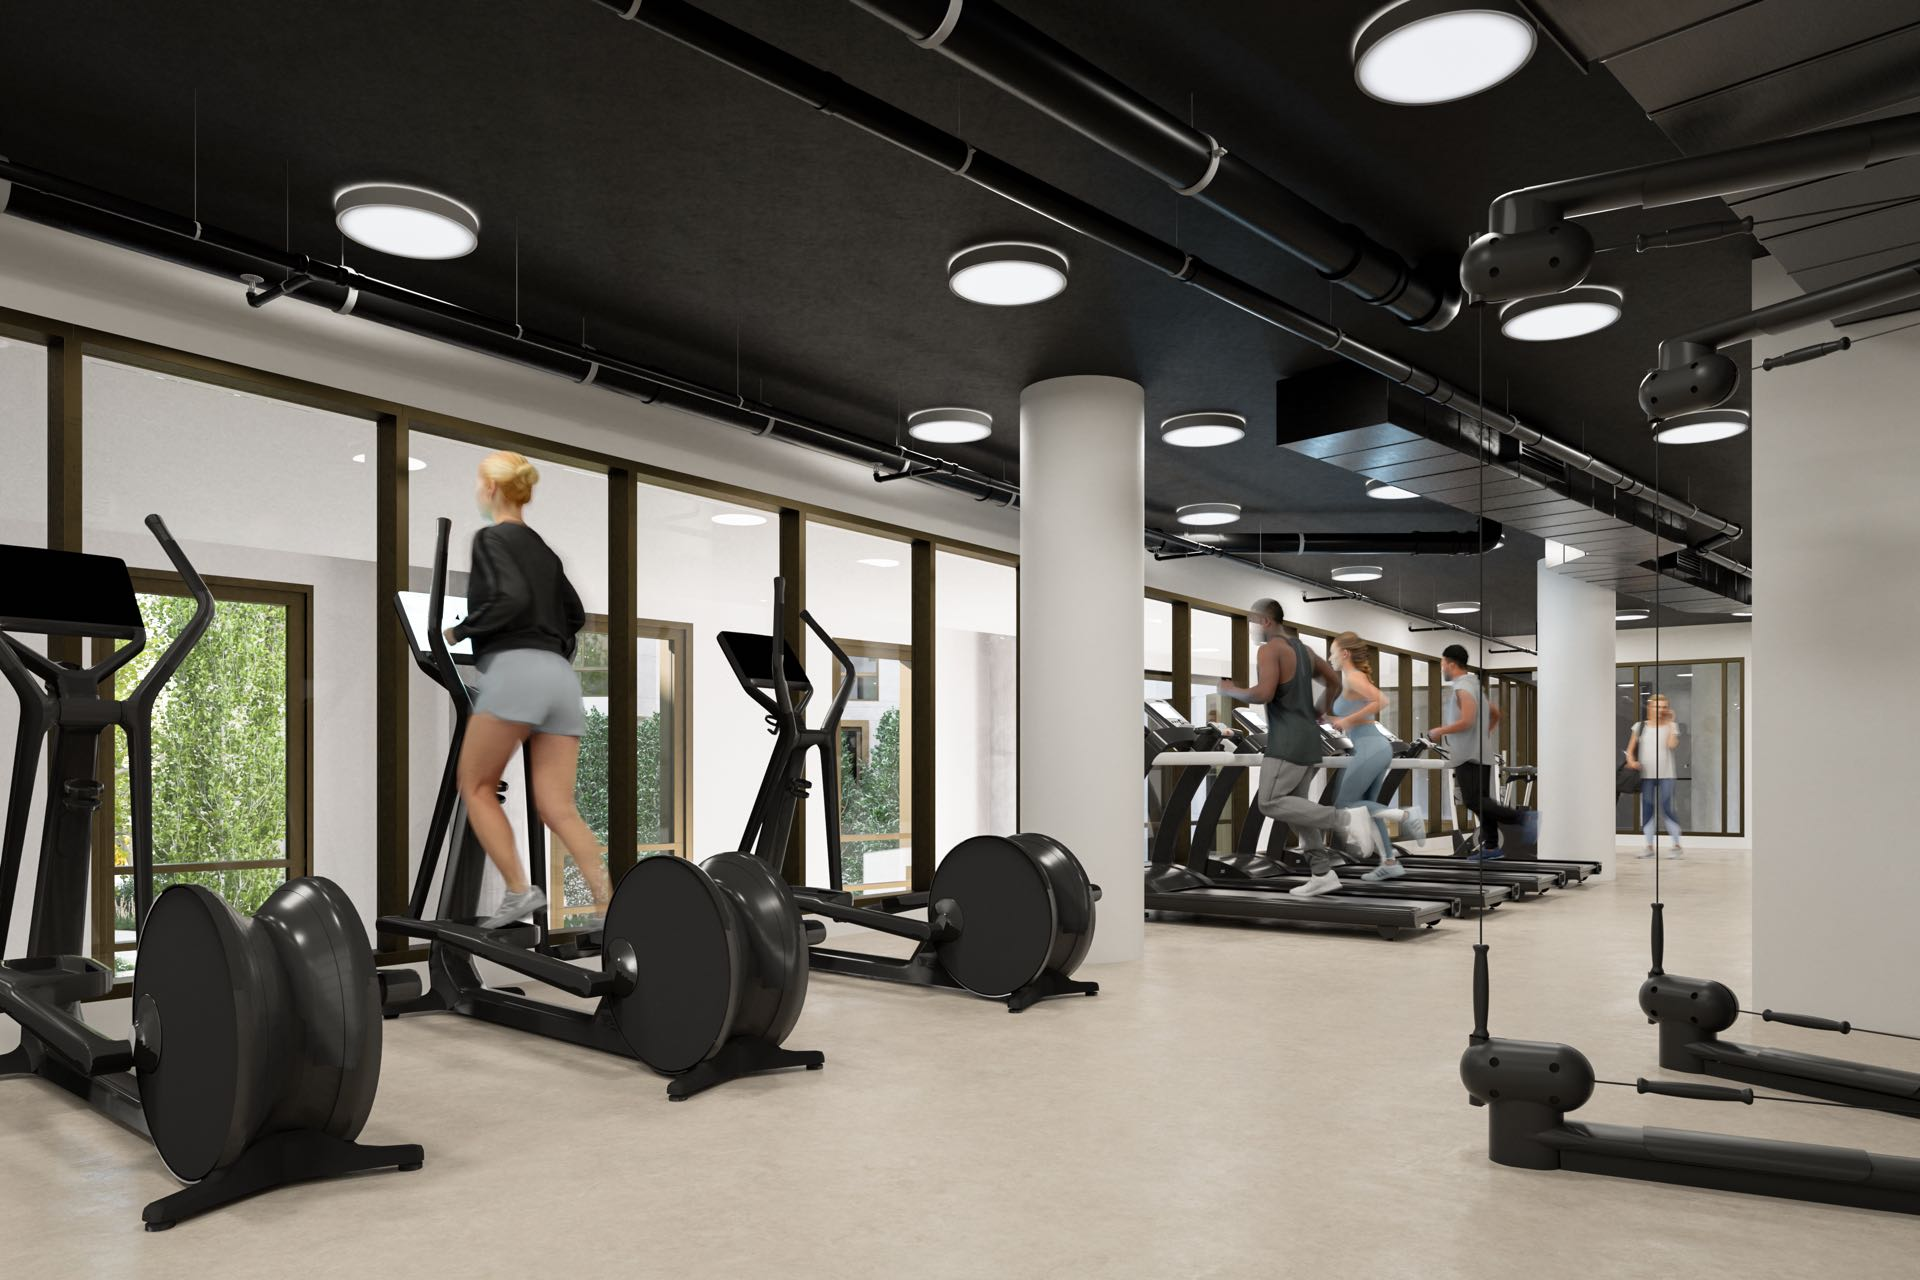 Inspired fitness spaces to motivate you